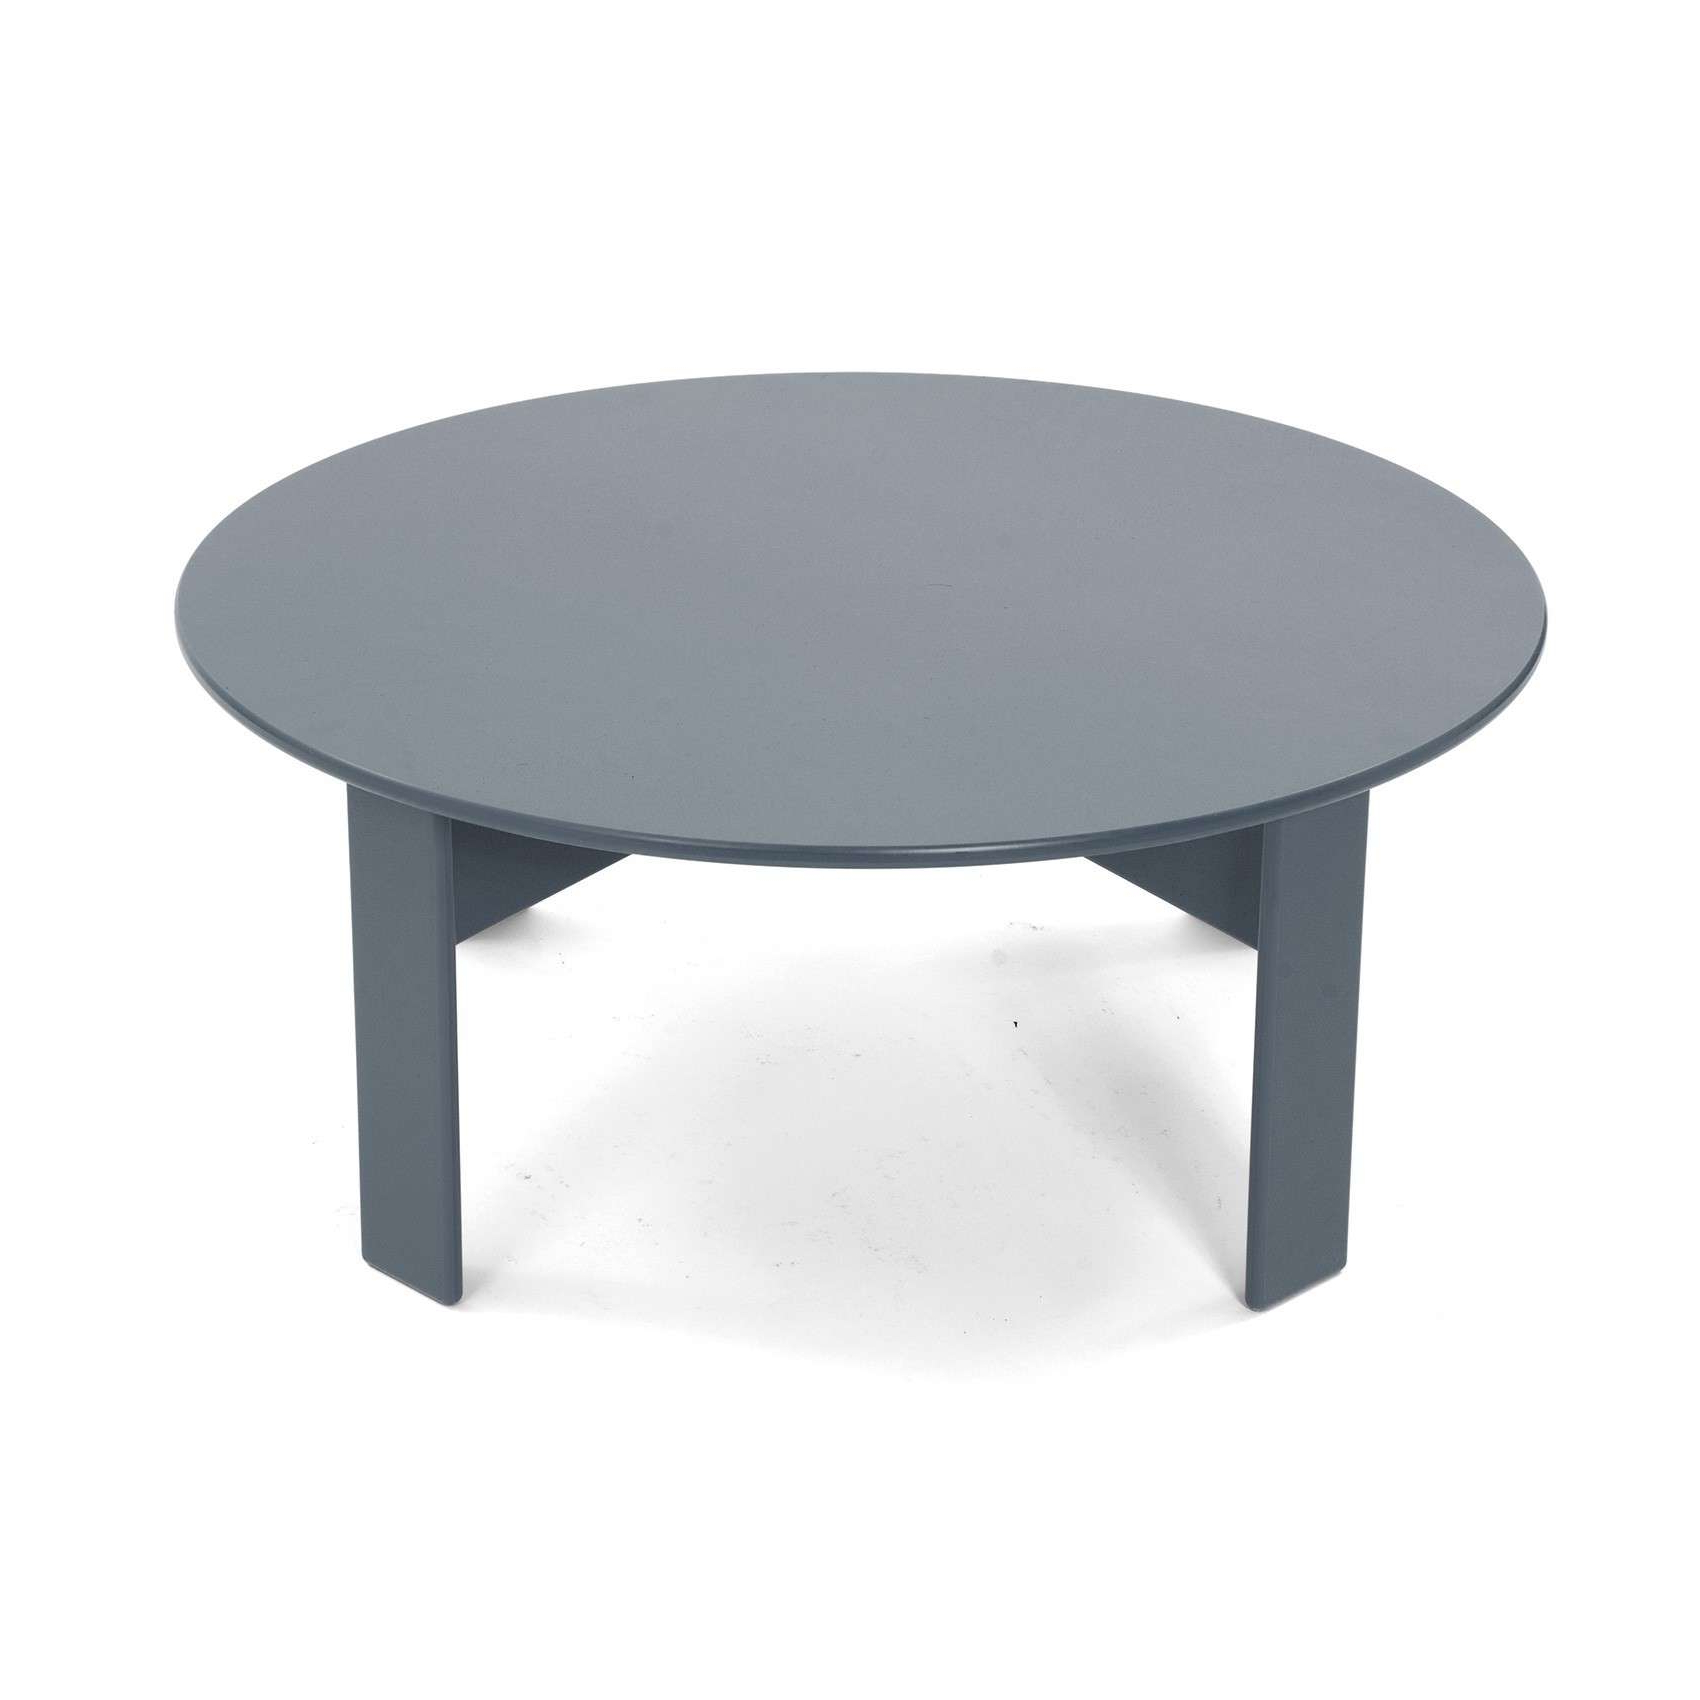 Cb2 Coffee Table – Coffee Drinker For Well Known Smart Round Marble Top Coffee Tables (Gallery 17 of 20)